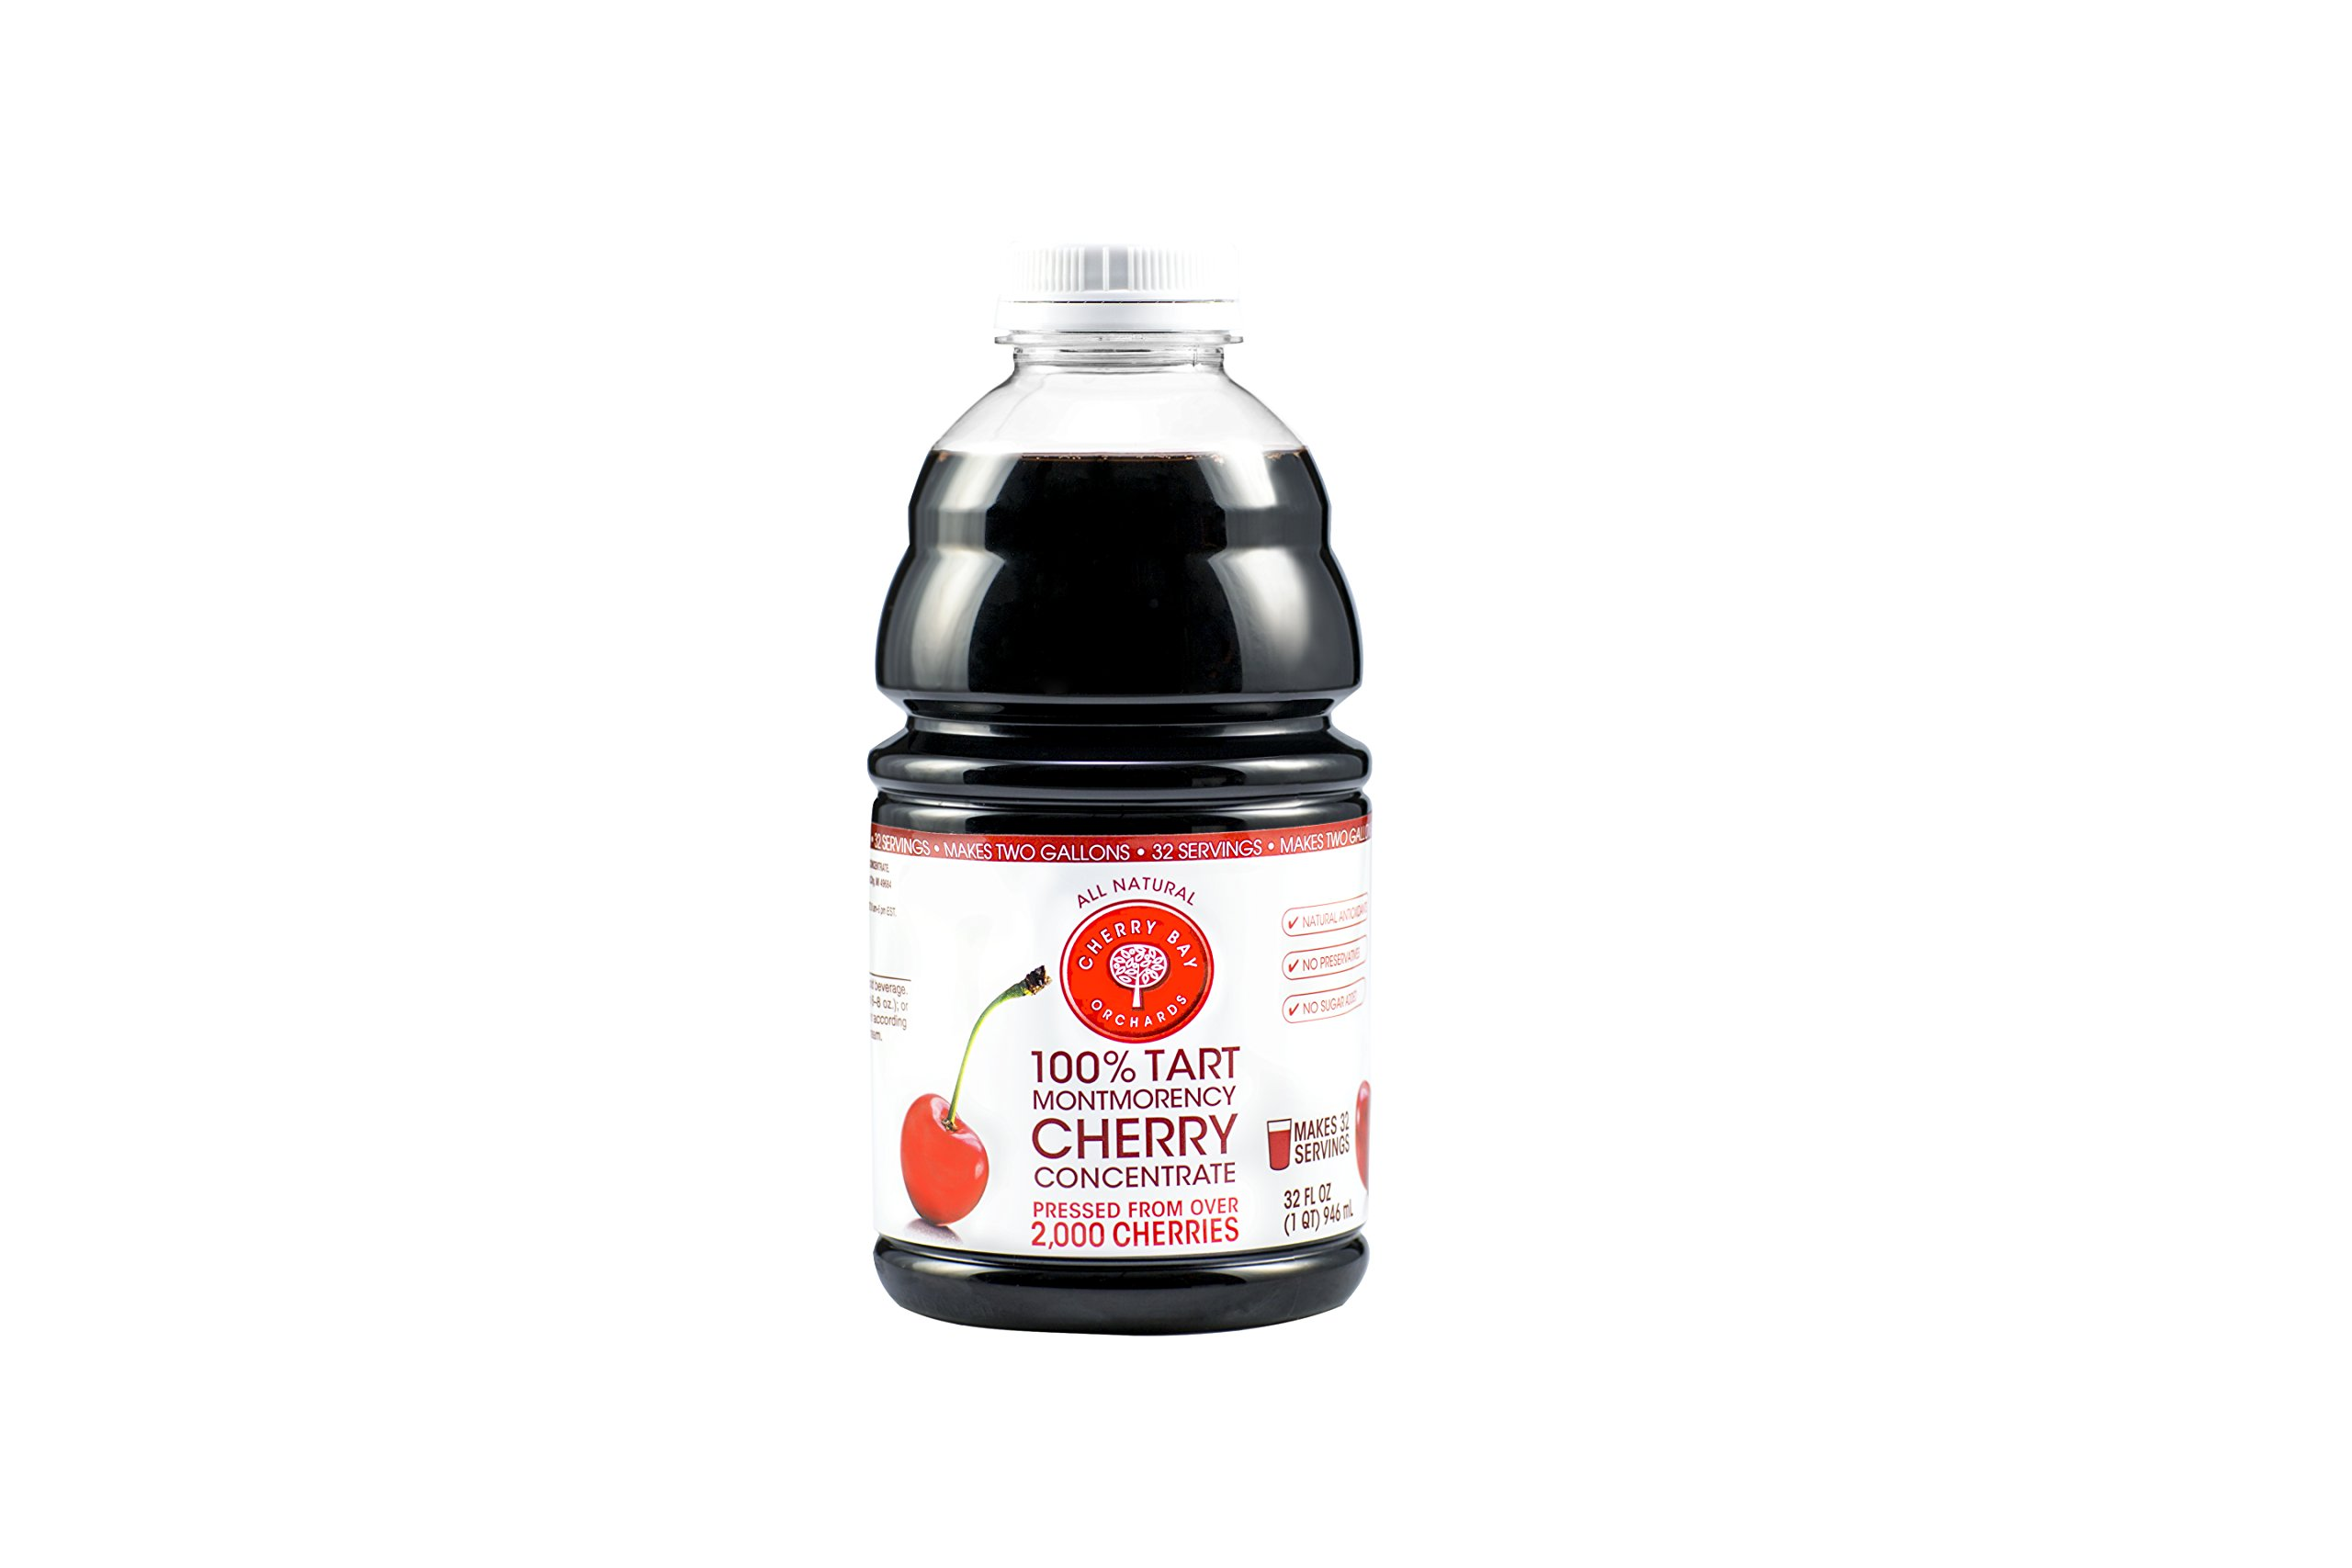 100% Tart Montmorency Cherry Concentrate 32oz Bottle (Case of 8)